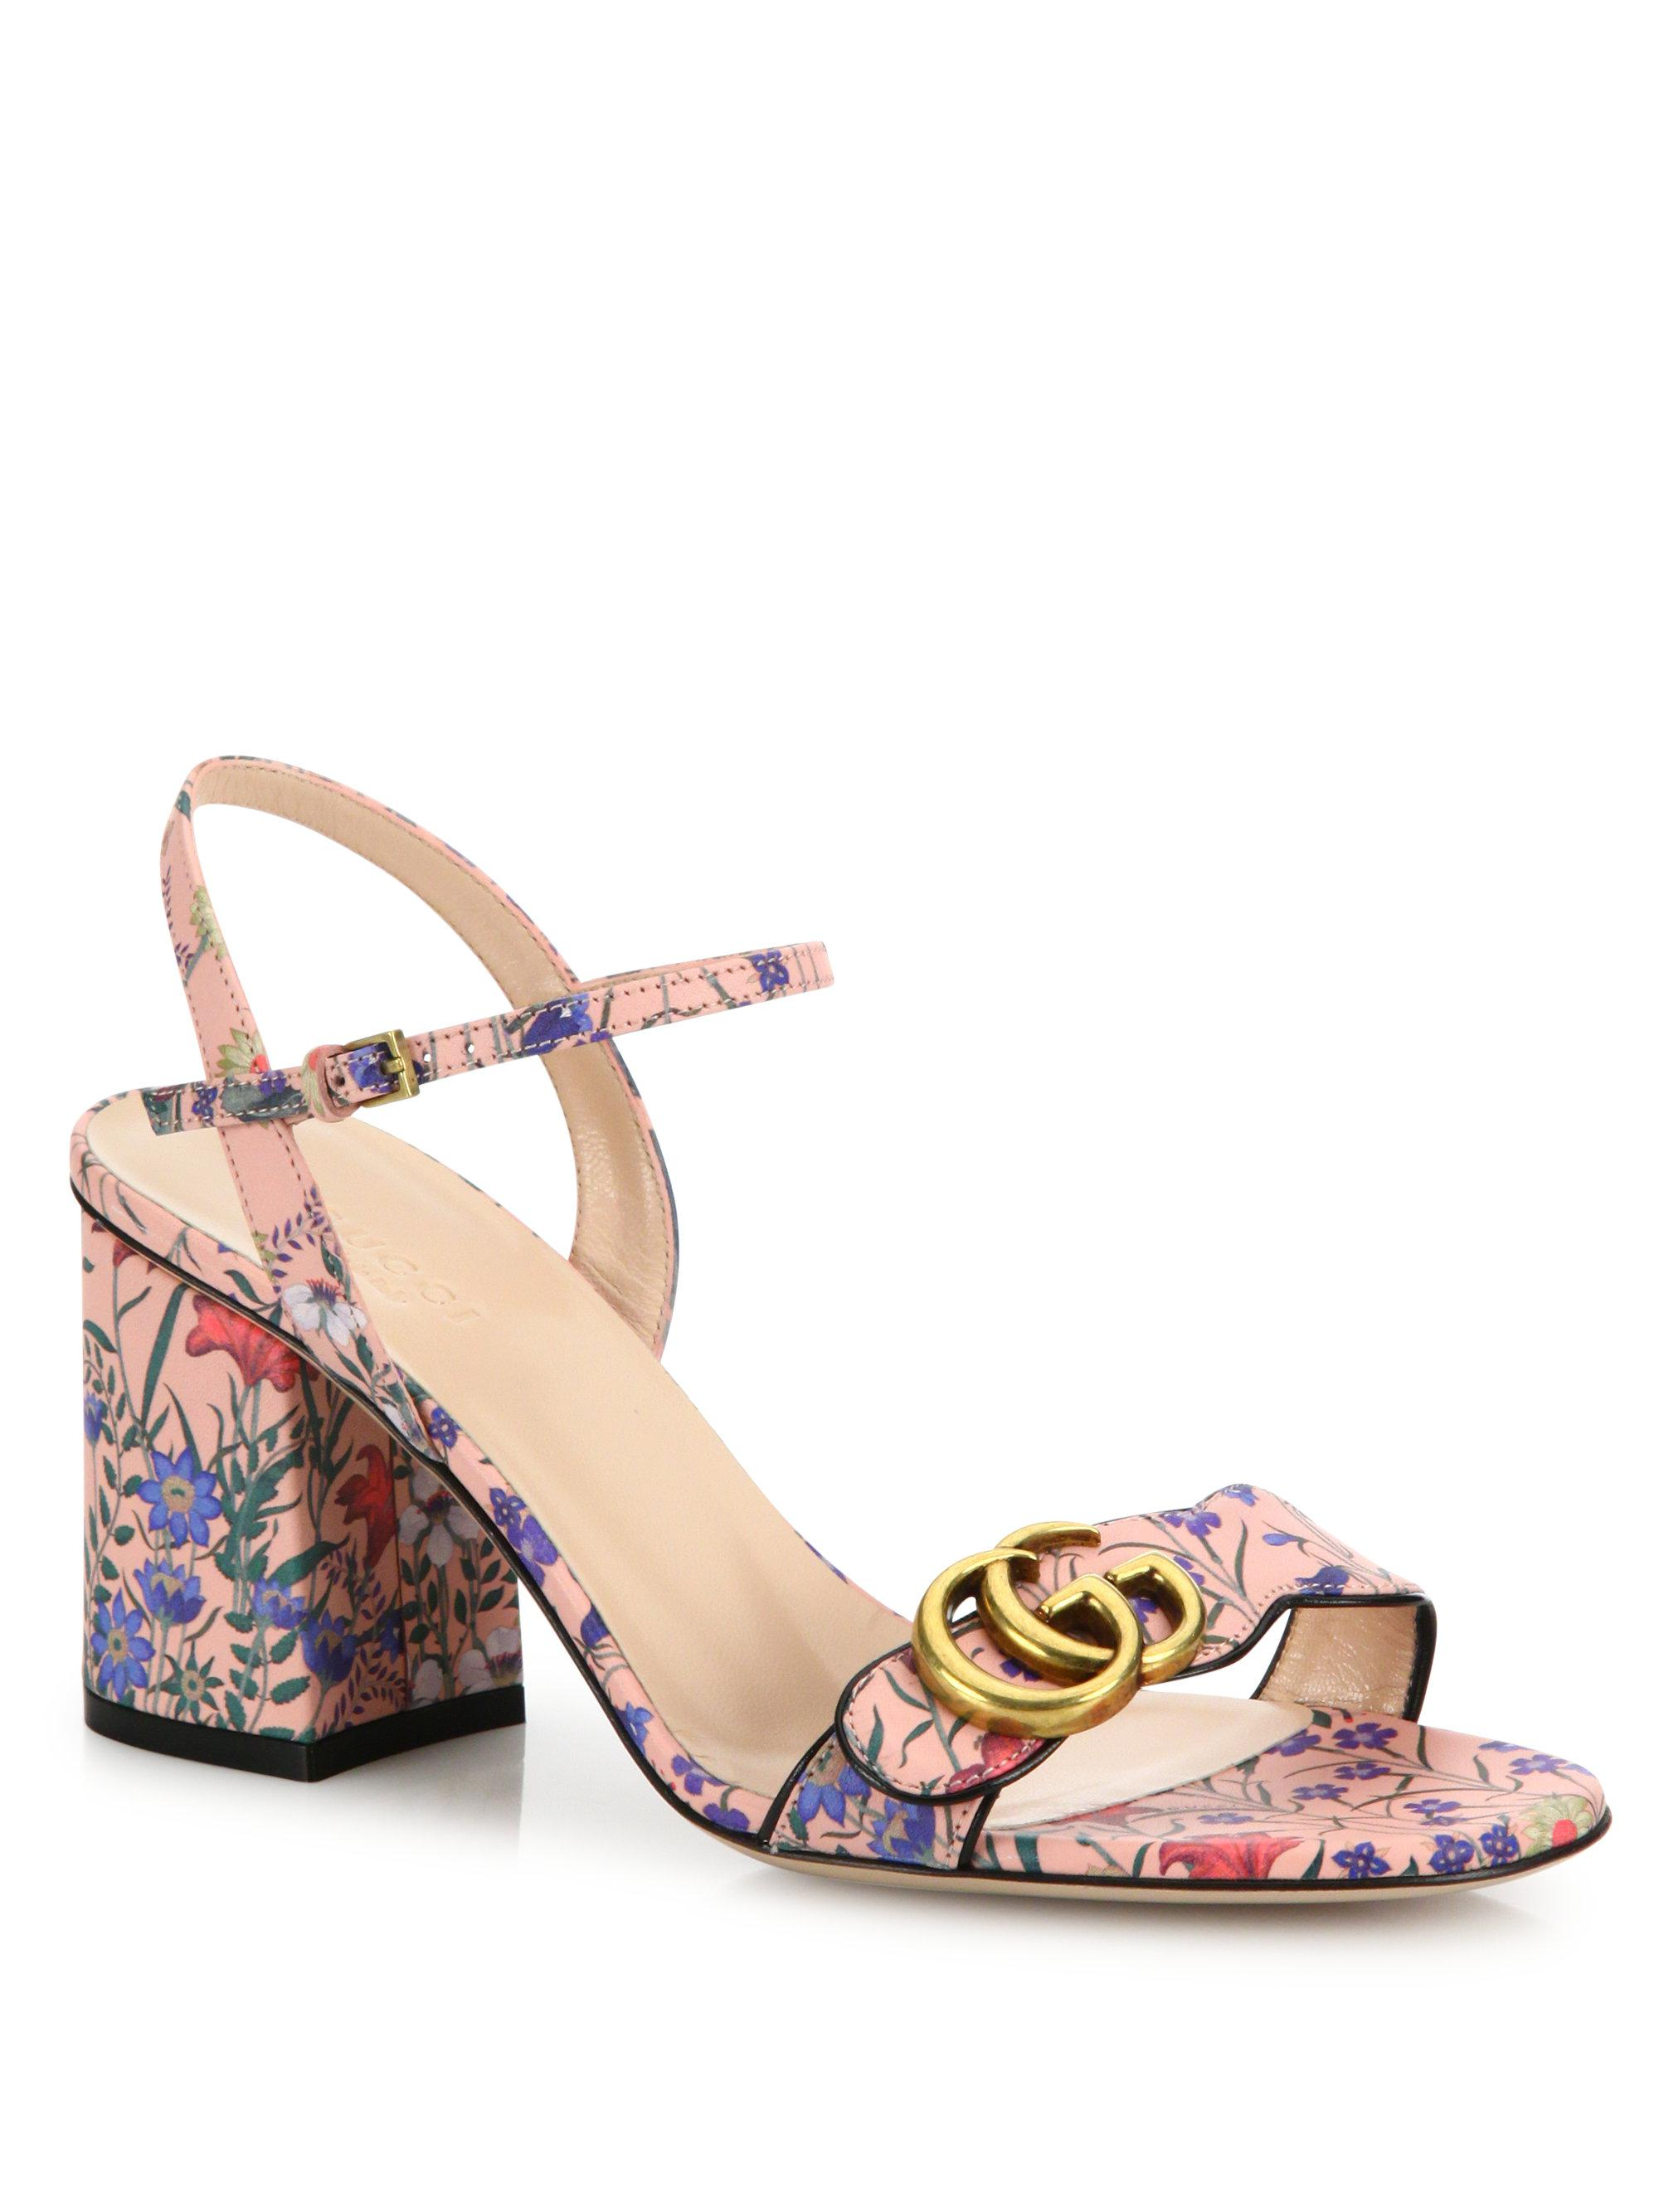 94d557b3988 Lyst - Gucci Marmont Floral-print Leather Block-heel Sandals in Pink